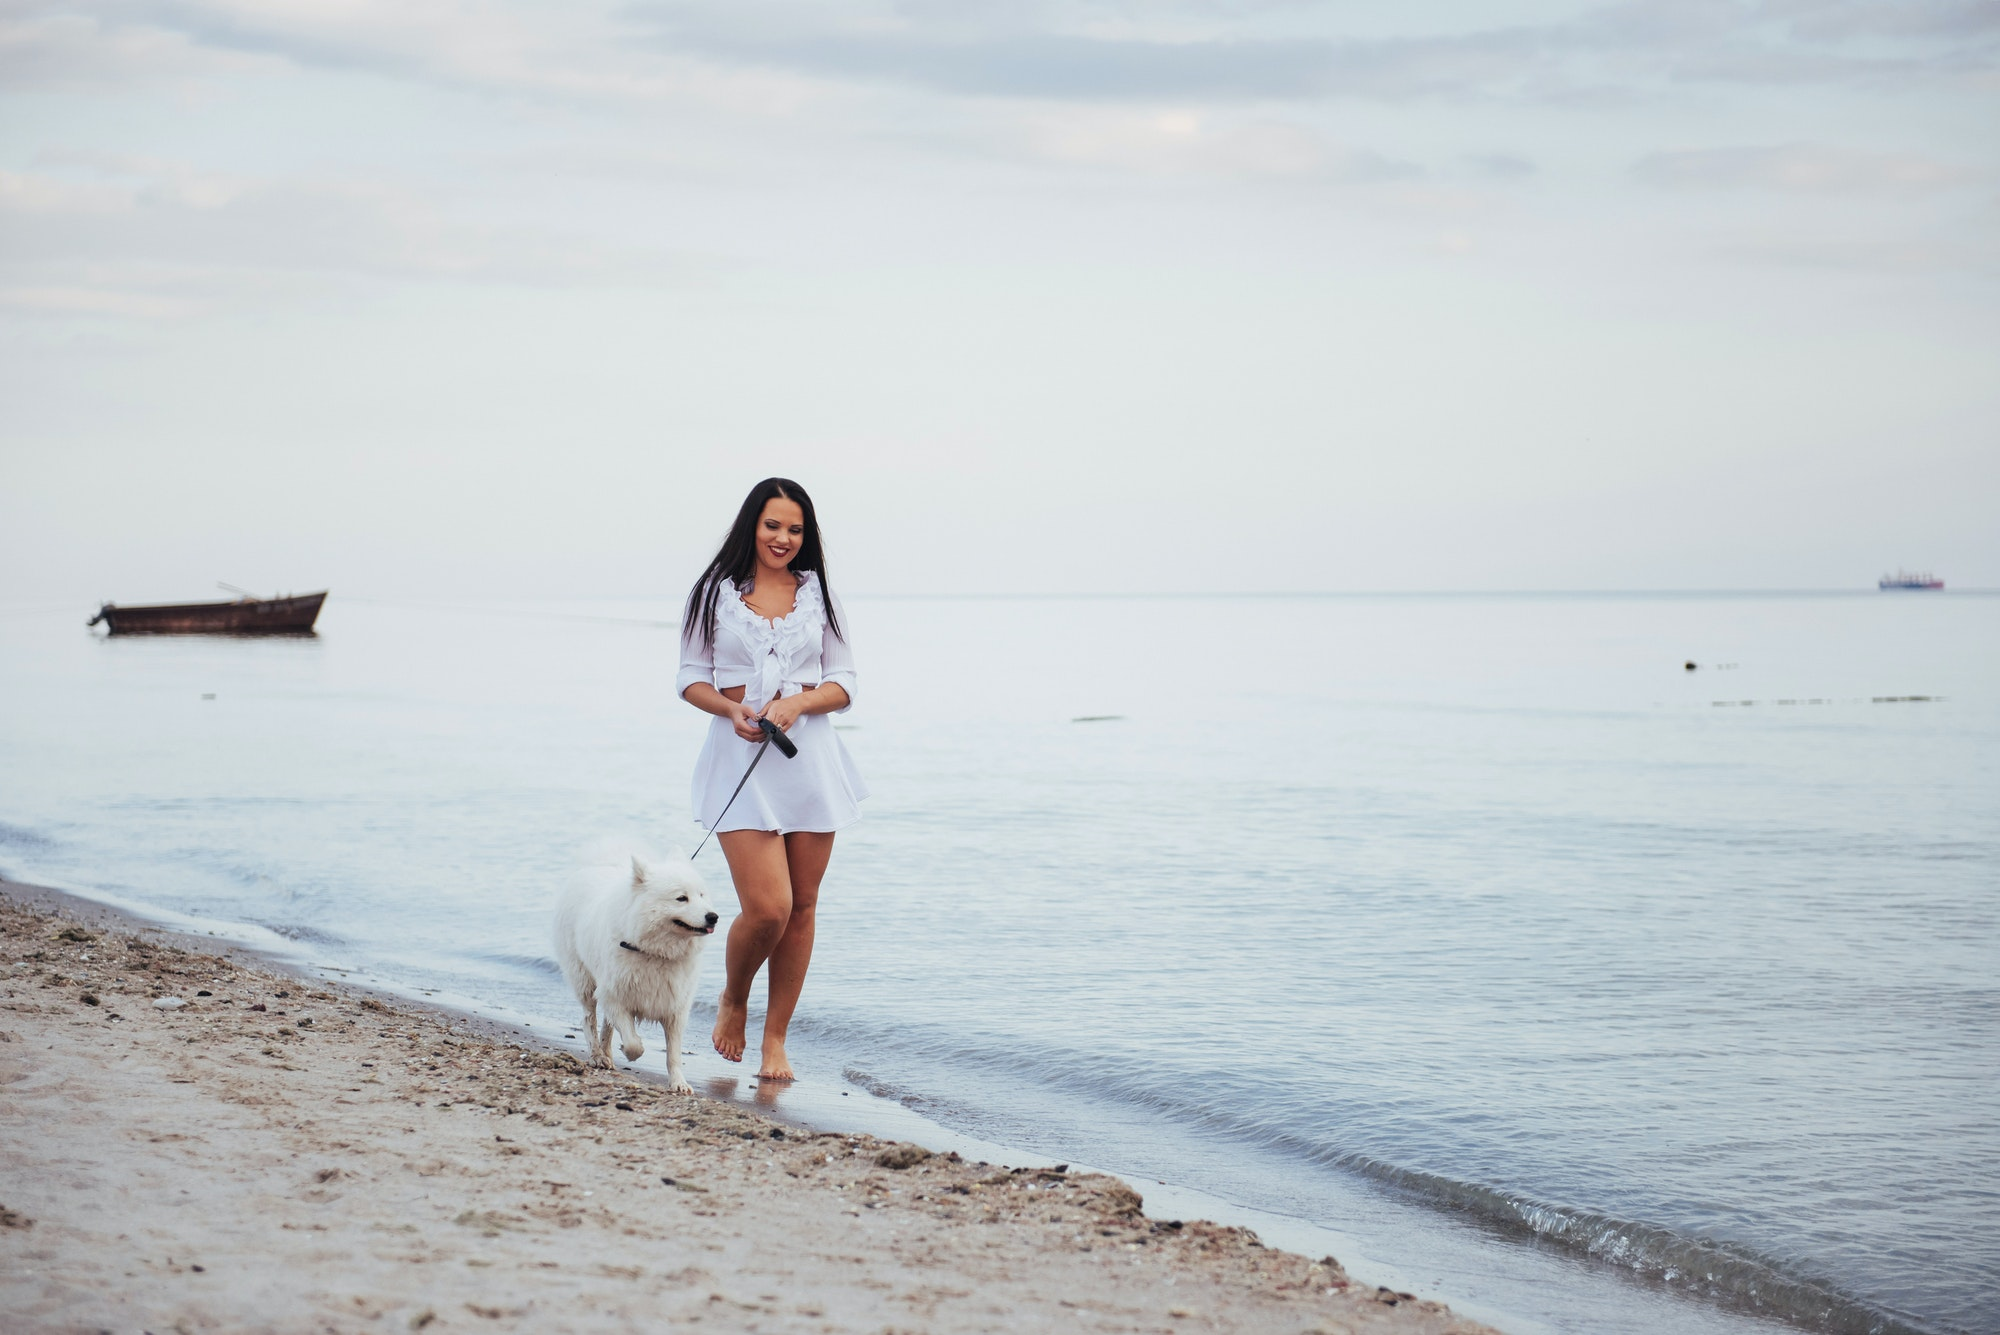 Beautiful brunette woman on the beach with a dog walking